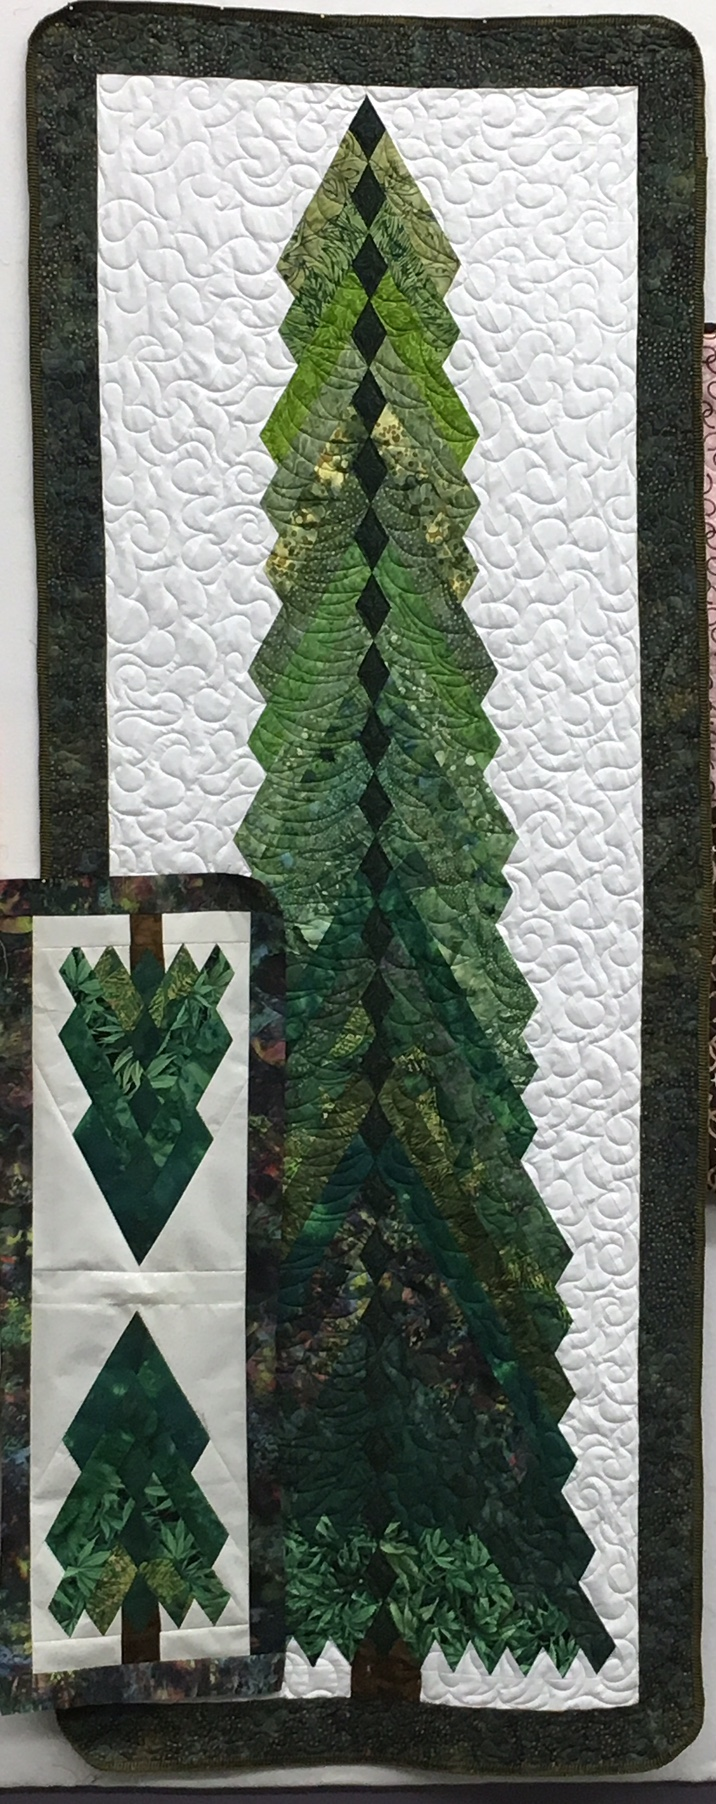 Kits available for the Tall Pines 7' tree. Sewing machine, pattern purchase and homework required.